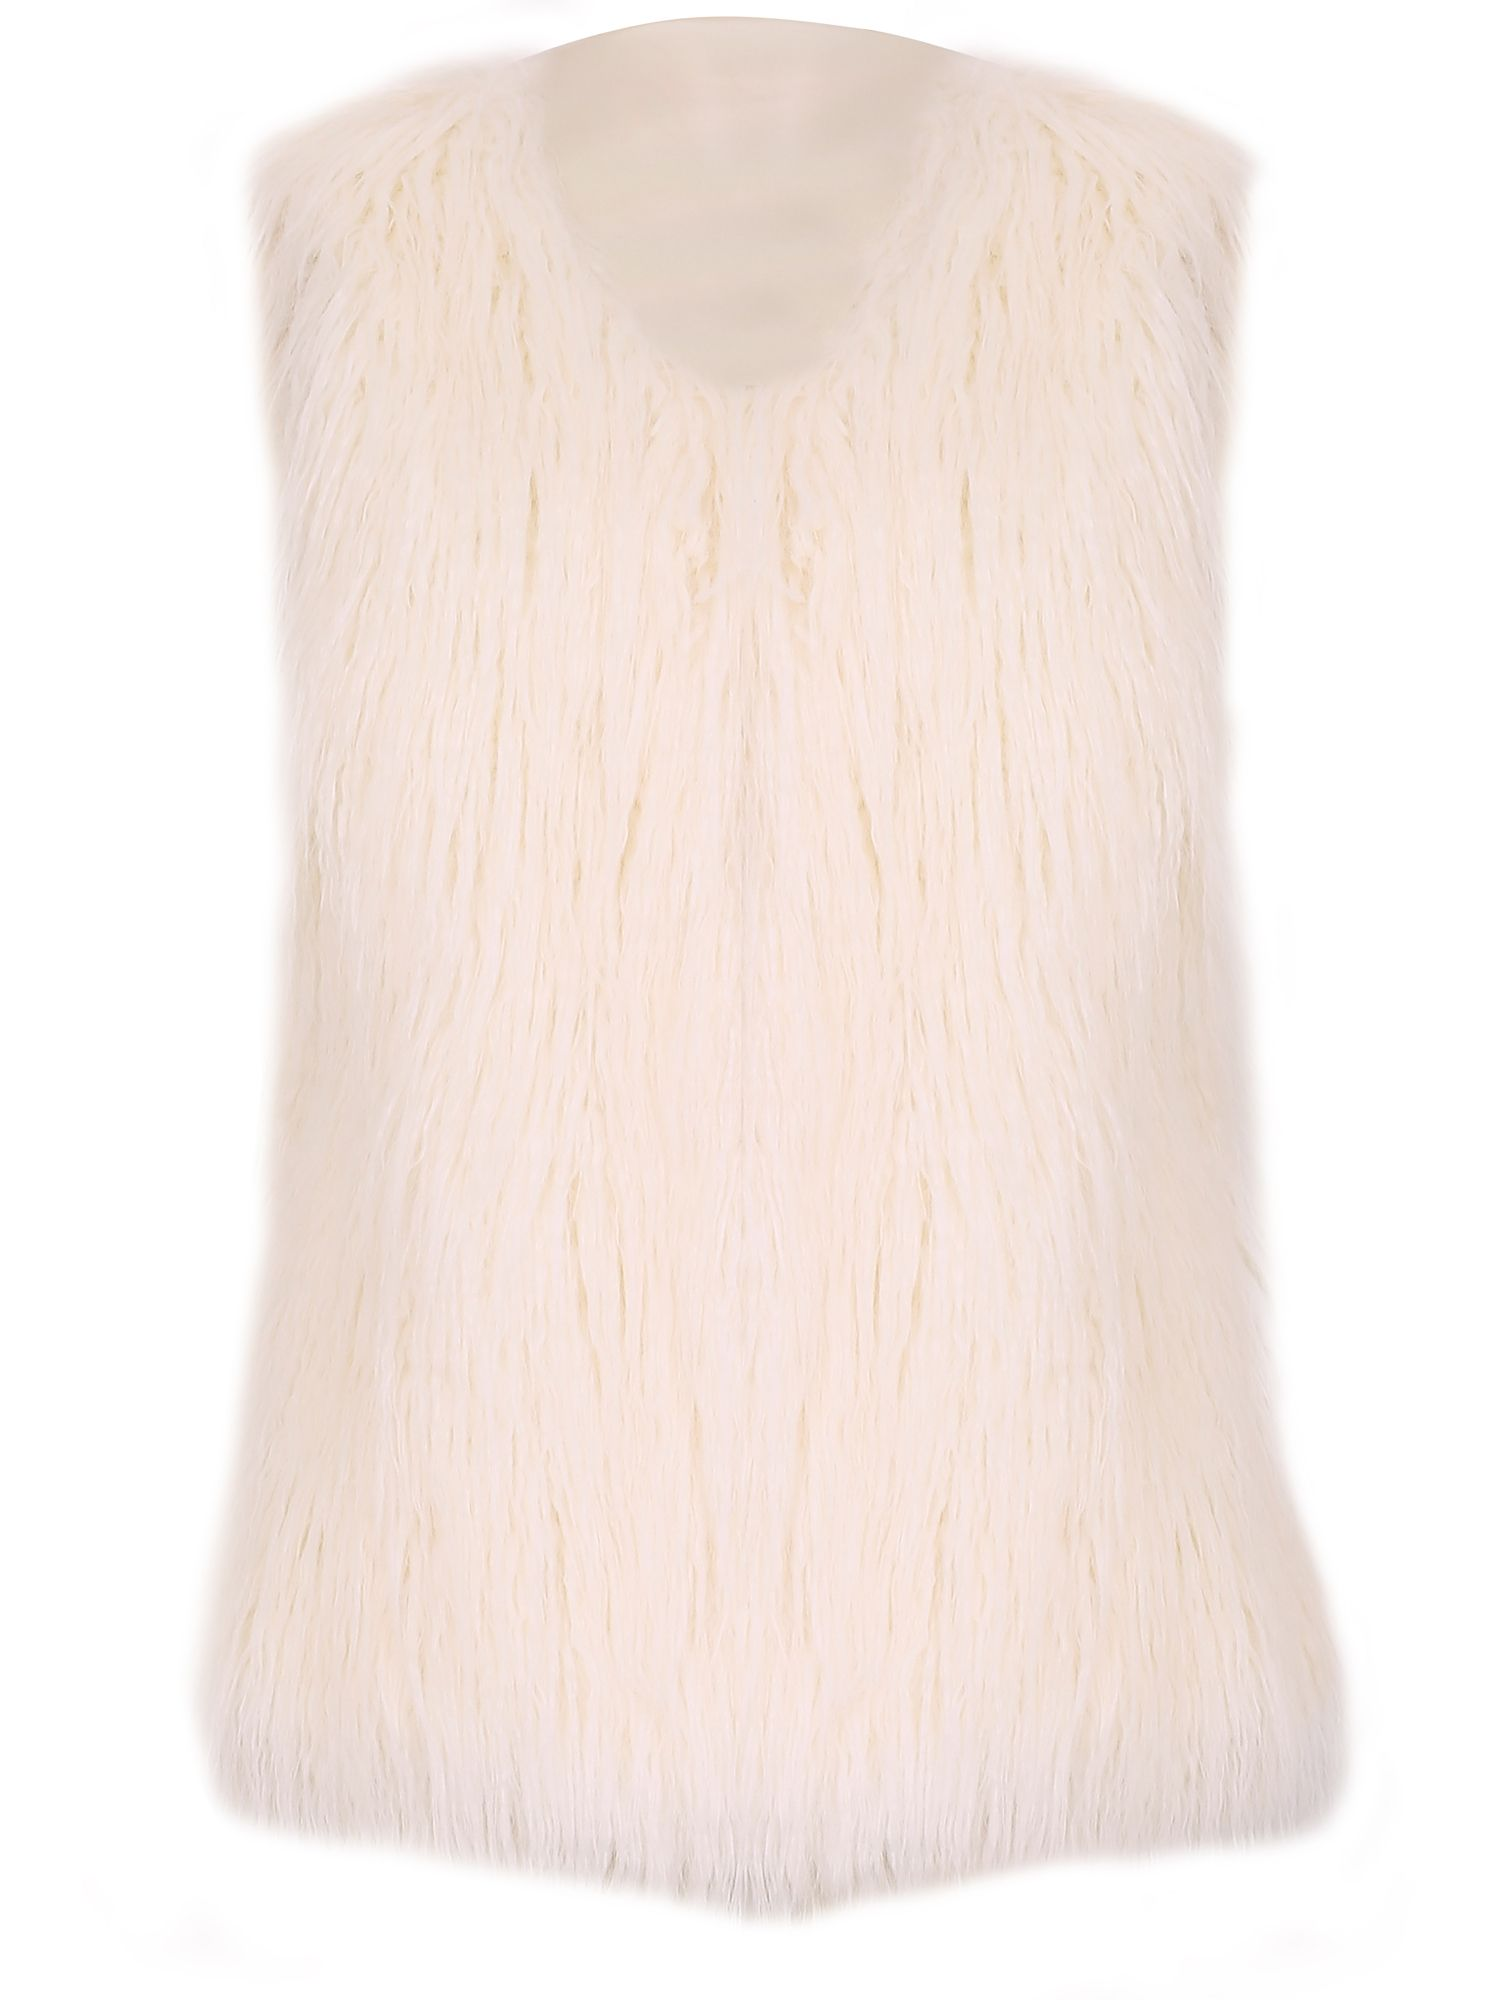 David Barry Faux Mongolian Fur Gilet, White